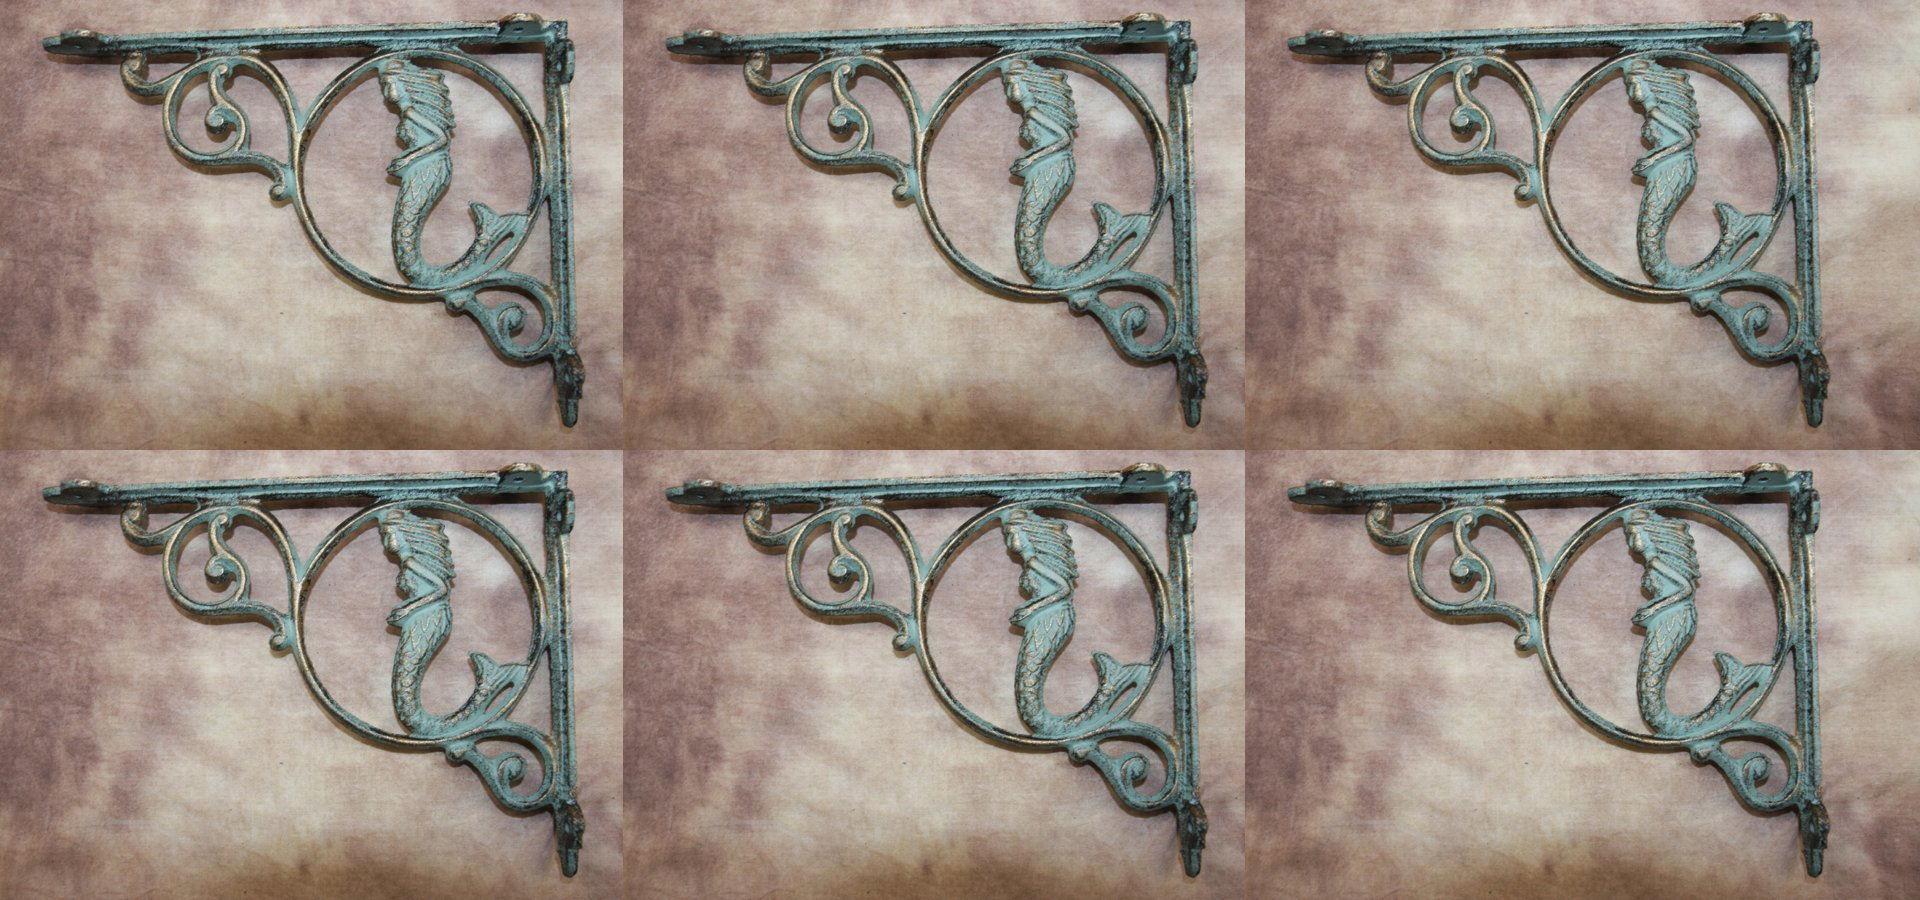 Vintage-style Mermaid Wall Shelf Brackets Set of 6